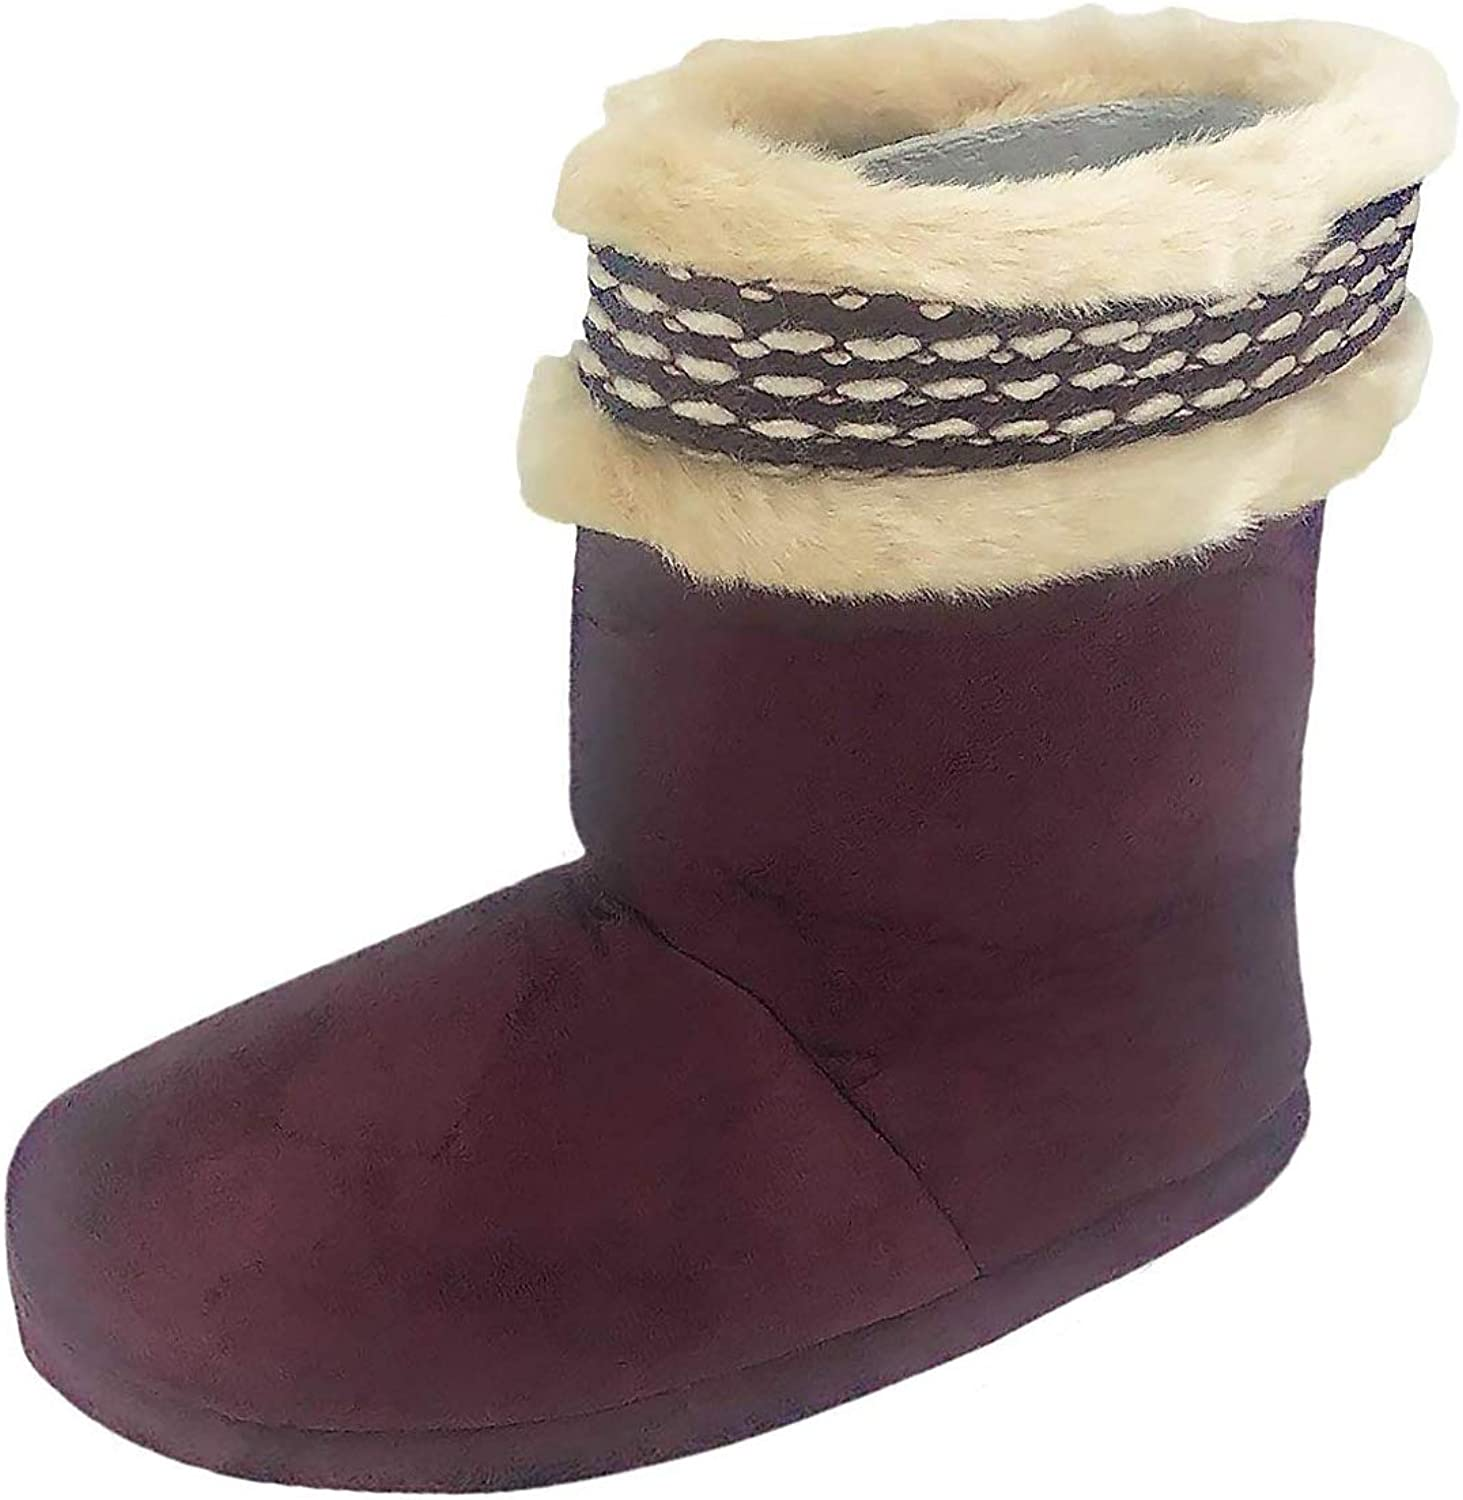 Isotoner Women's Woodlands Cozy Boot Slippers- Enhanced Heel Cushion